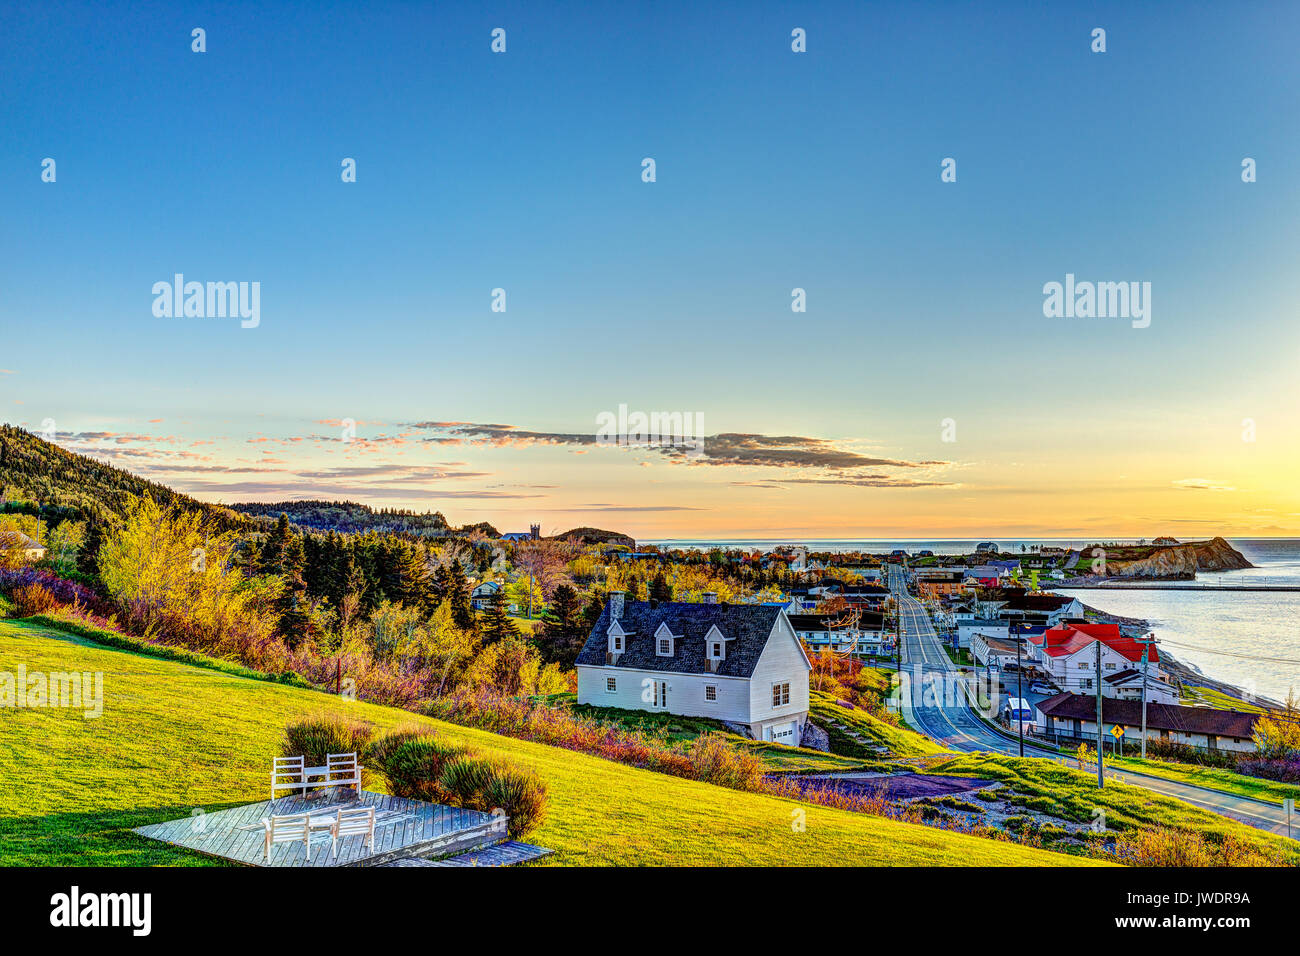 Hotel chairs on hill during sunrise in Perce, Gaspe Peninsula, Quebec, Canada, Gaspesie region with cityscape - Stock Image